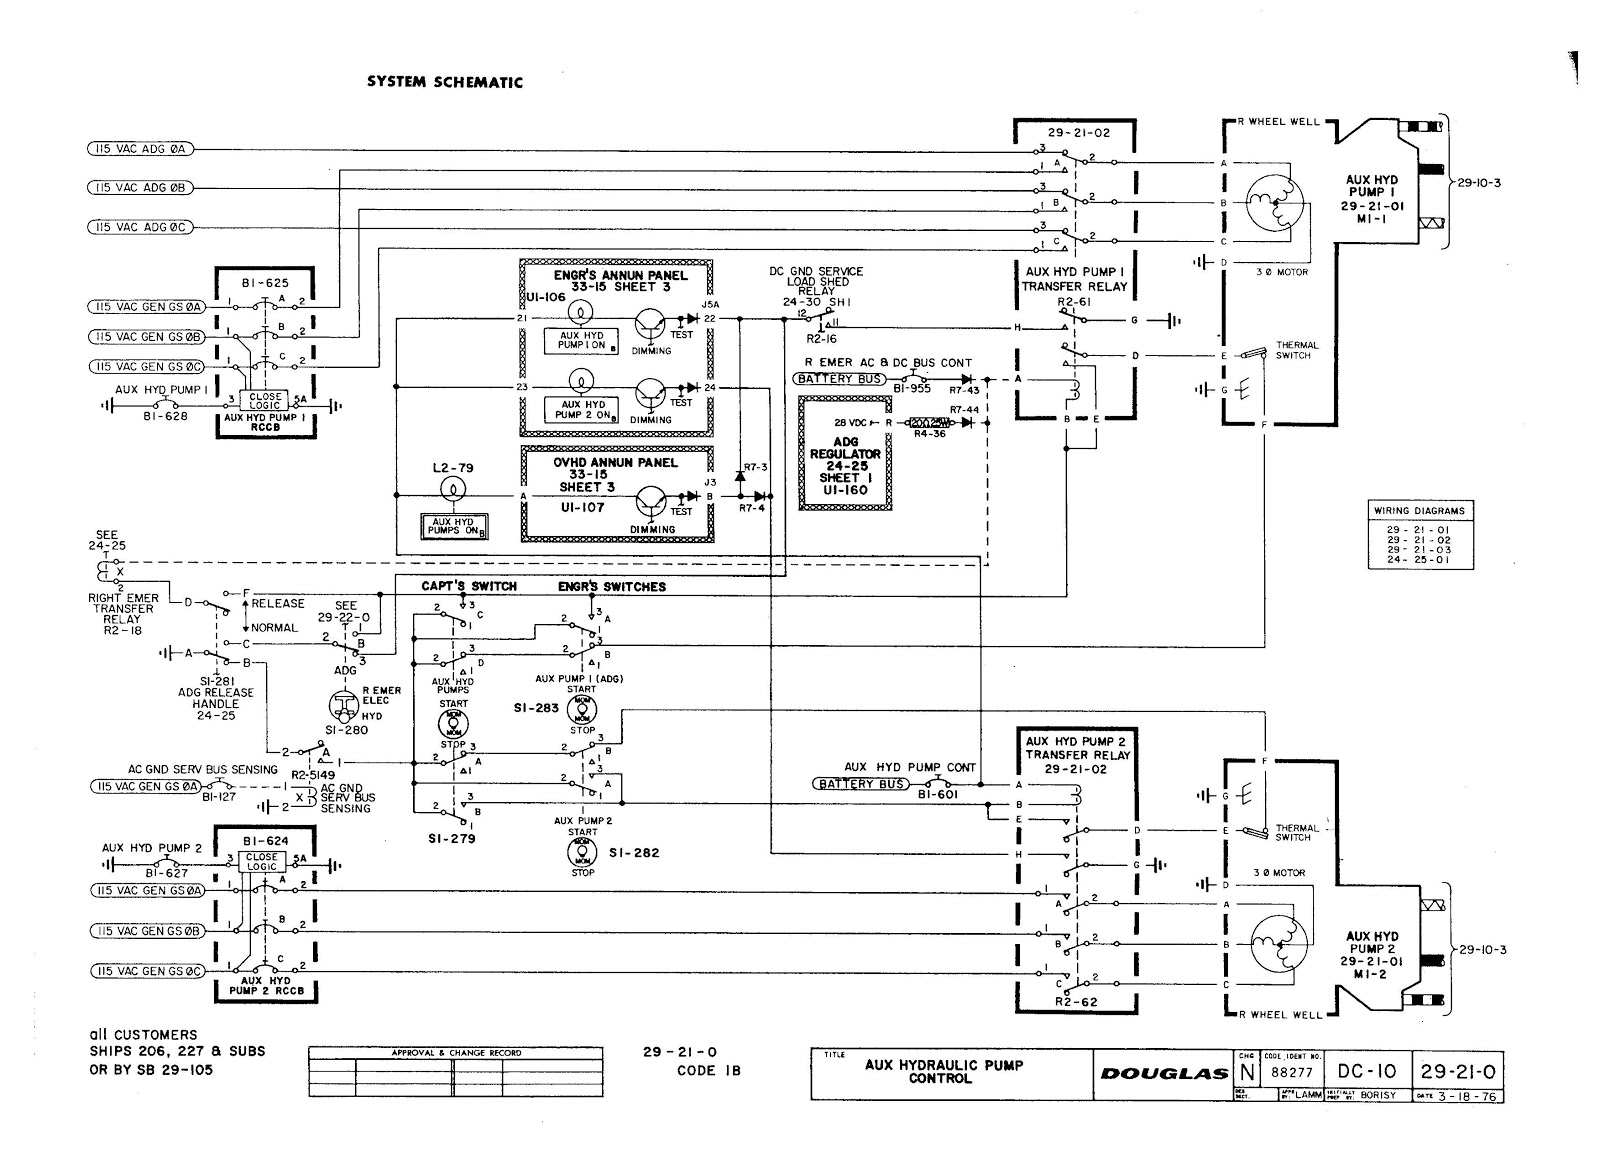 Schematic+diagram+dc+10+hydraulic+001 part 66 virtual school aircraft wiring and schematic diagrams reading wiring schematics at n-0.co